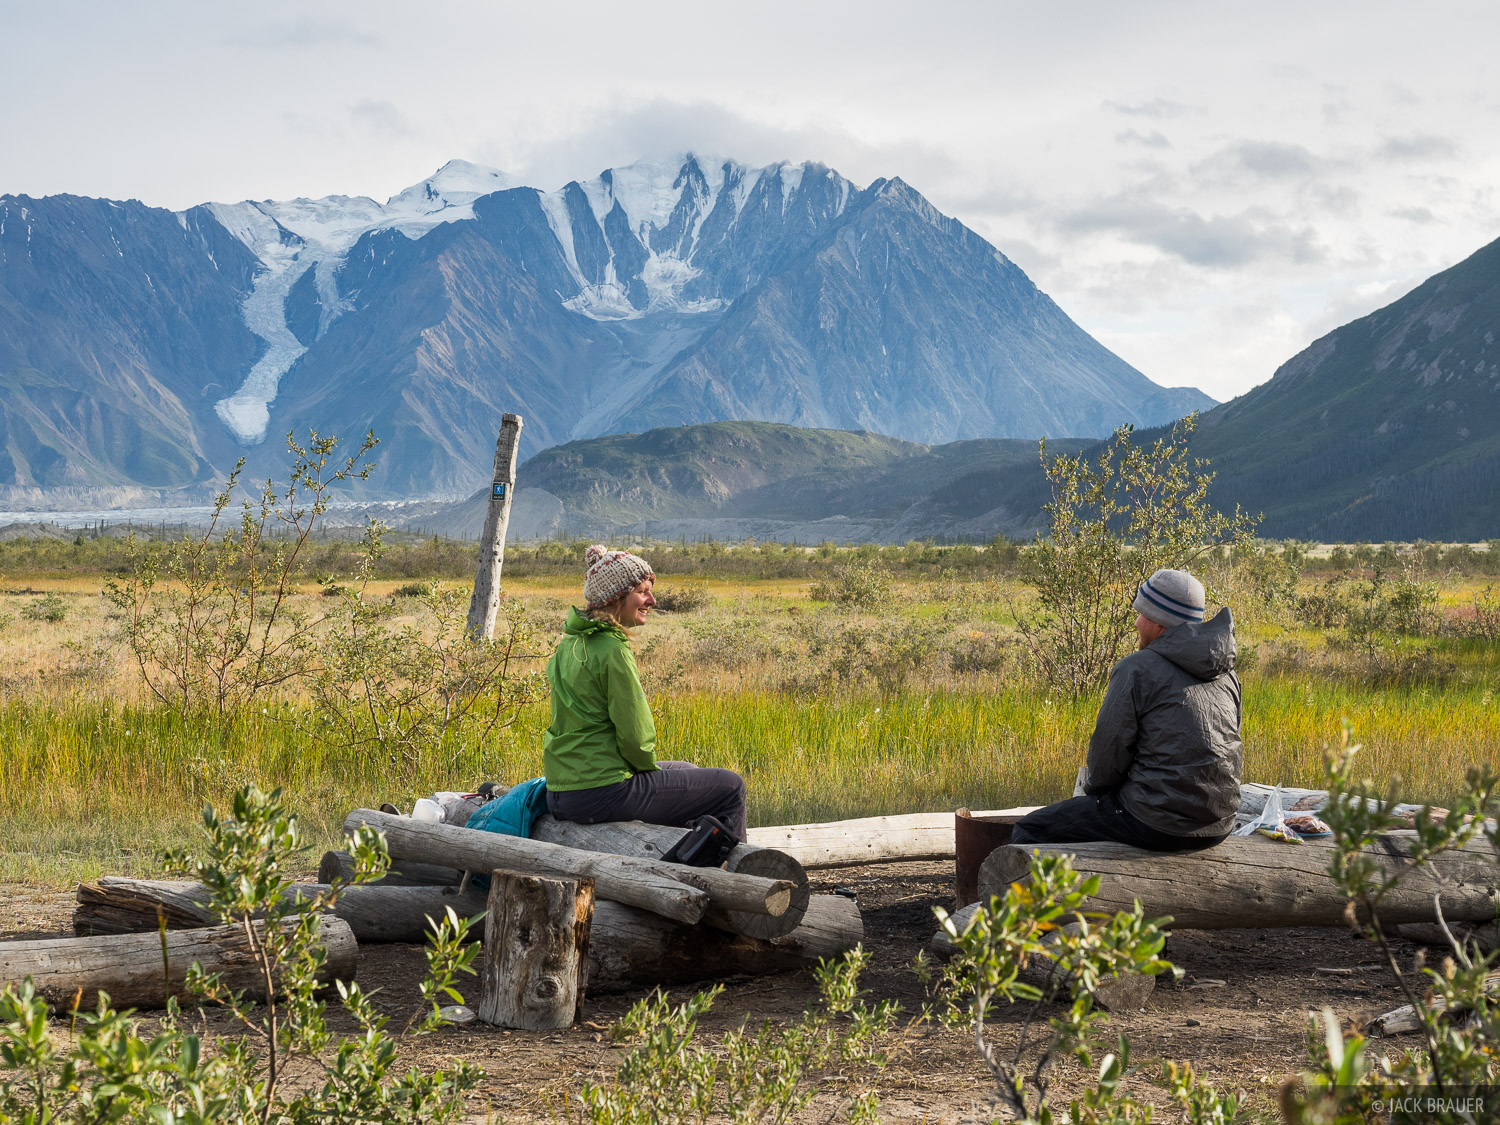 Our third evening in Kluane National Park, at the Canada Creek campsite.